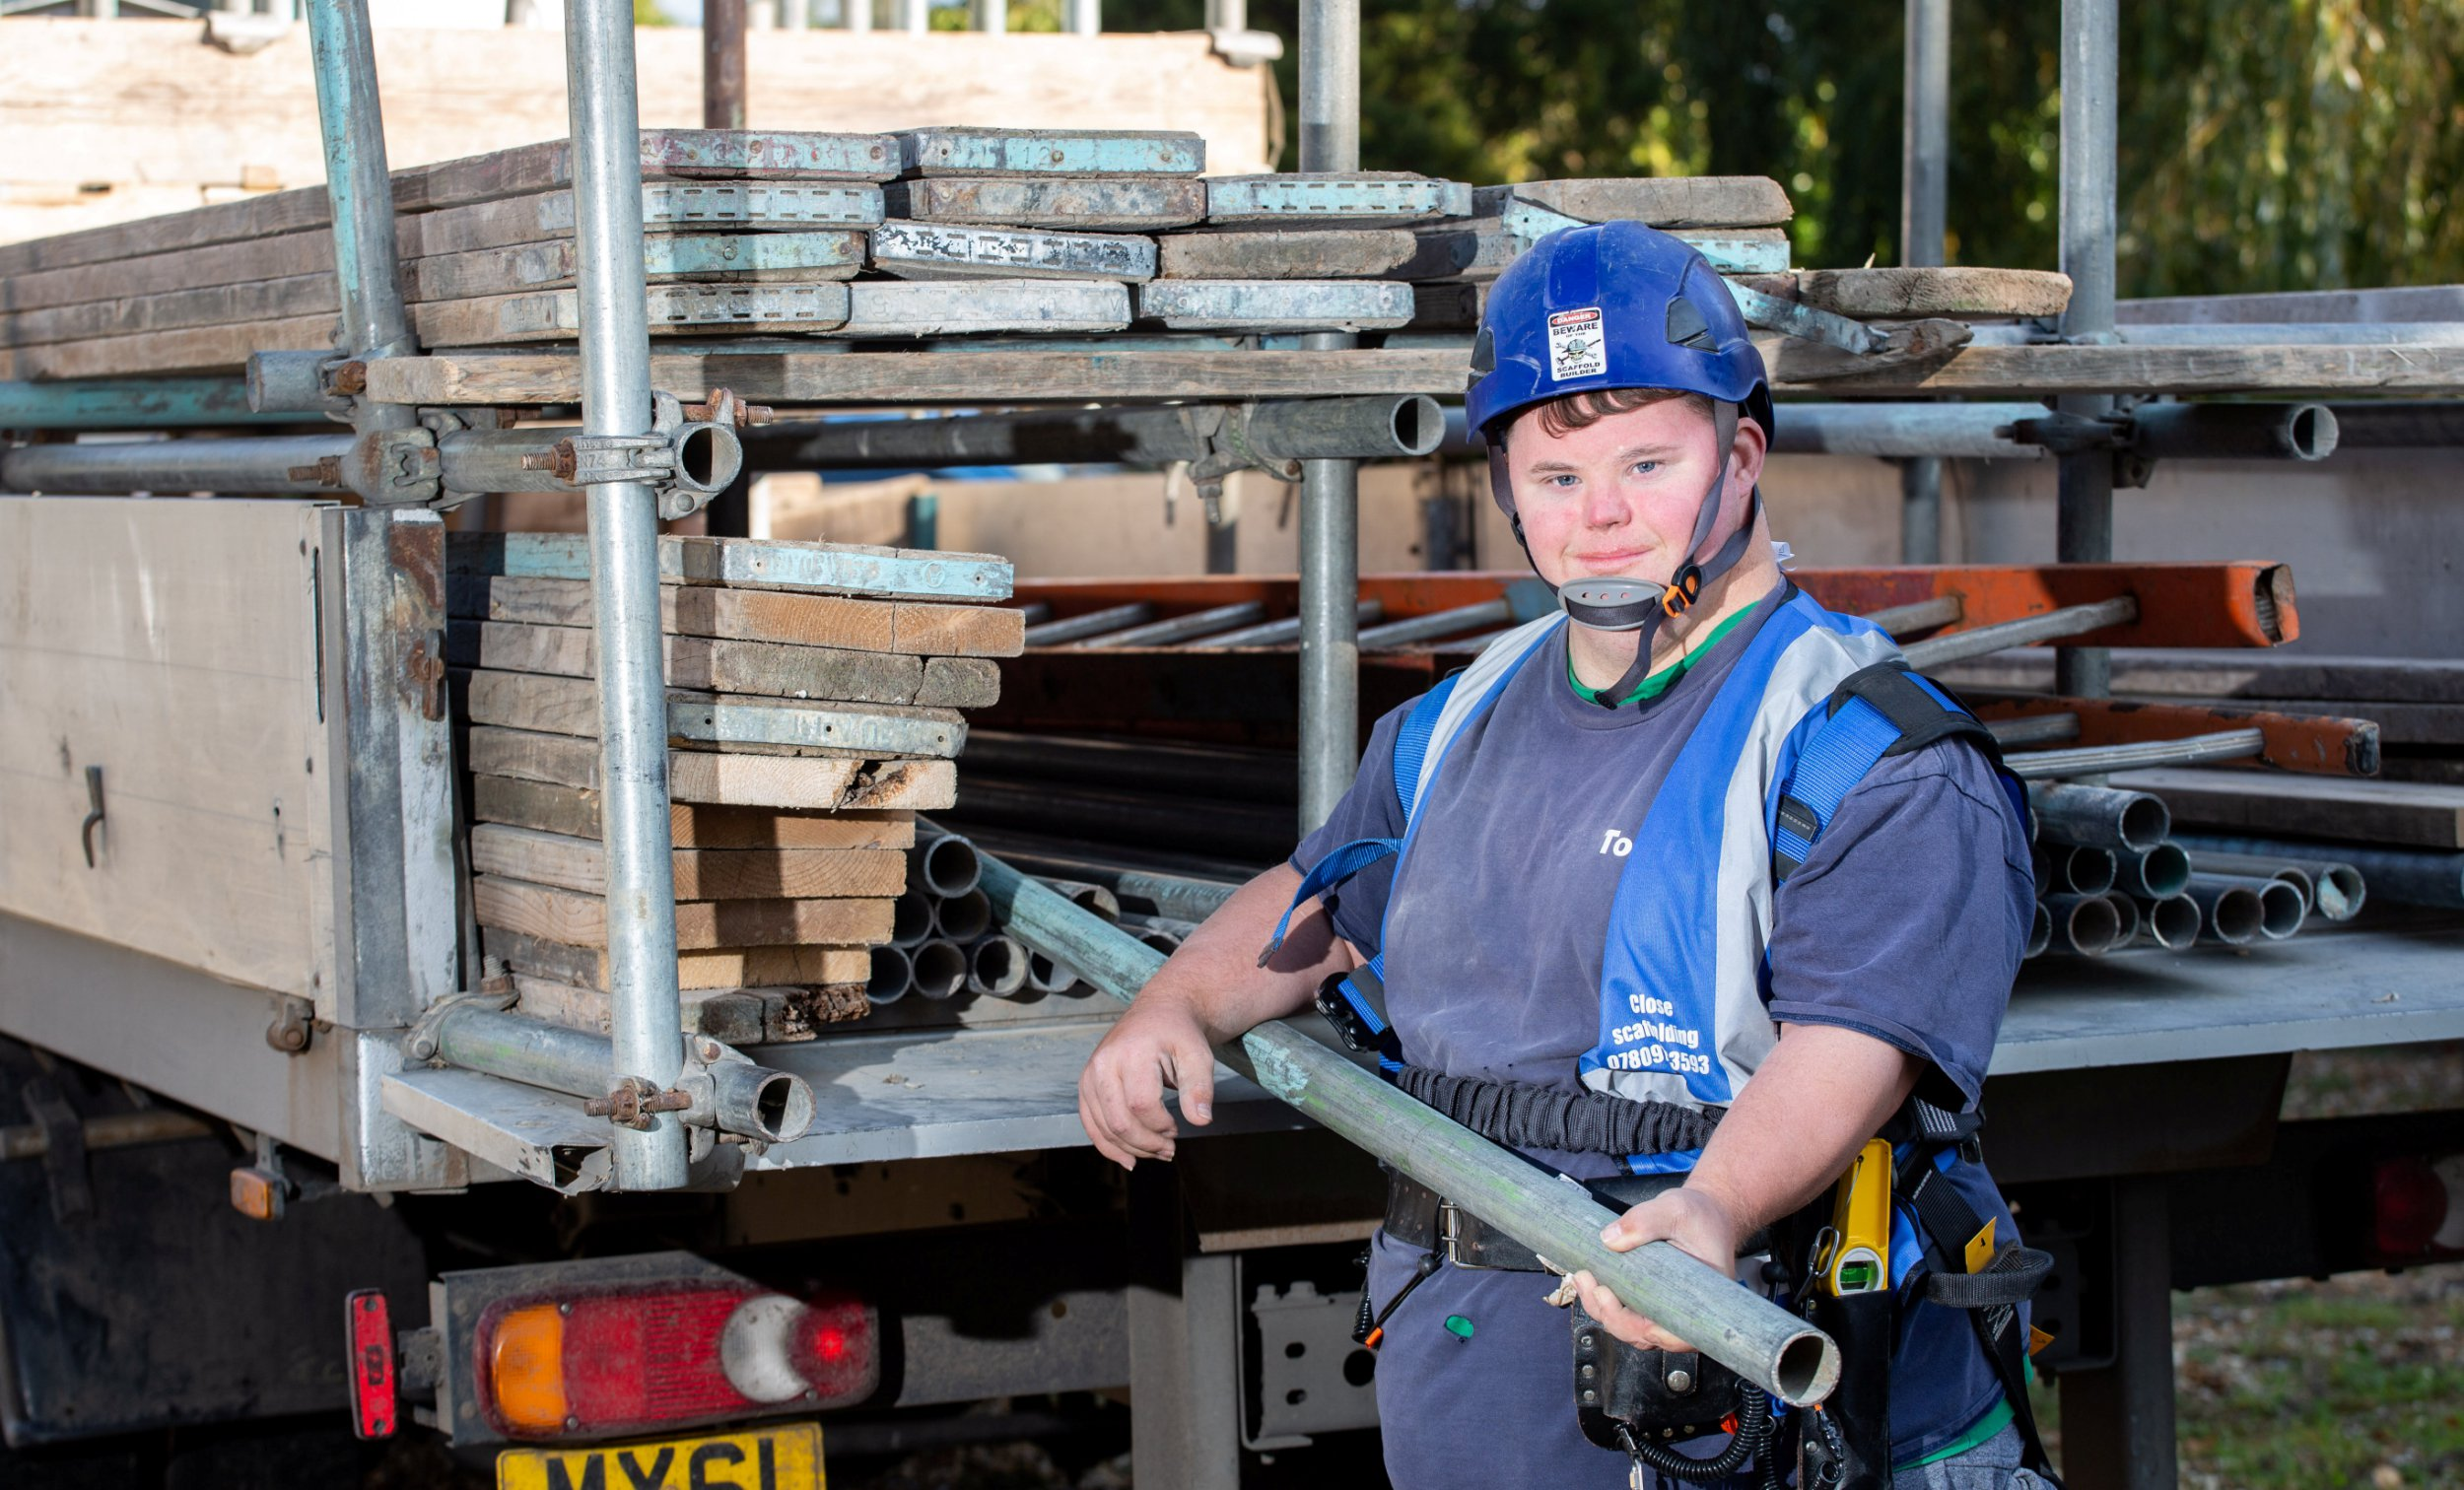 """Todd Scanlon, who has Down's syndrome works as a part-time scaffolder for Coles Scaffolding in Swindon. His boss Martyn Coles says he wants to see others with disabilities offered similar opportunities and is working to help Mr Scanlon, 29, get qualified. Swindon, Wiltshire. See SWNS story SWBRscaffold. A Down's Syndrome lad is living his 'dream' after a kind-hearted building firm took him on - as an apprentice scaffolder. Todd Scanlon, 29, has been employed on a permanent, part-time basis by Coles Scaffolding Contractors Ltd., working for them two full days-a-week. Todd had """"begged"""" scaffold company owner Martyn Coles, 35, for a job for the last two years. And Martyn, who has run the scaffolding company, based in Swindon, Wilts., for the last five years, has said Todd's disability is not holding him back. Todd loves his job, carrying out every task he is asked to do with focus and a smile, and cracking jokes with his colleagues."""